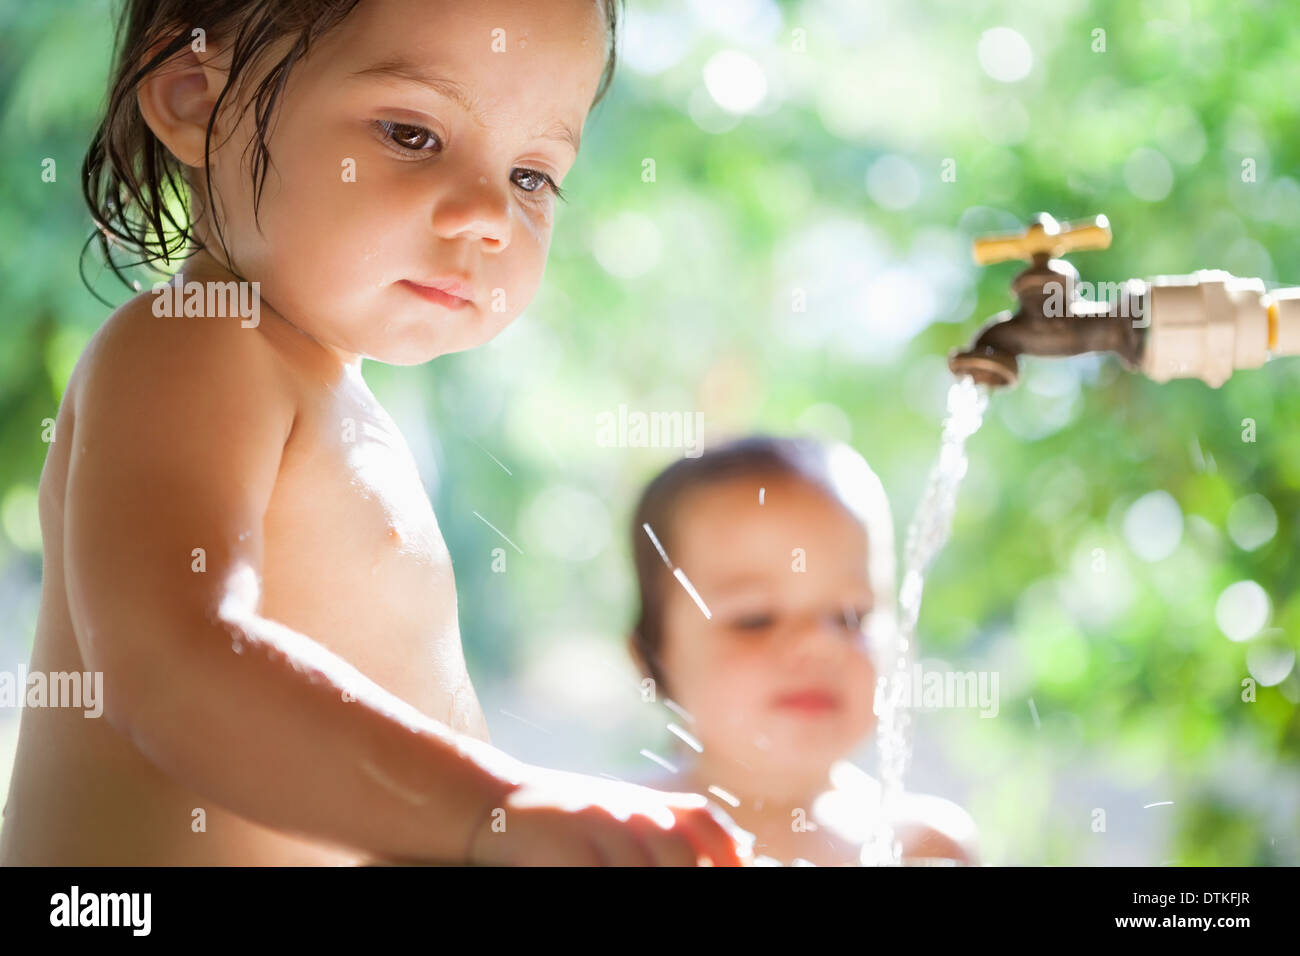 Baby girls playing in water spout outdoors - Stock Image